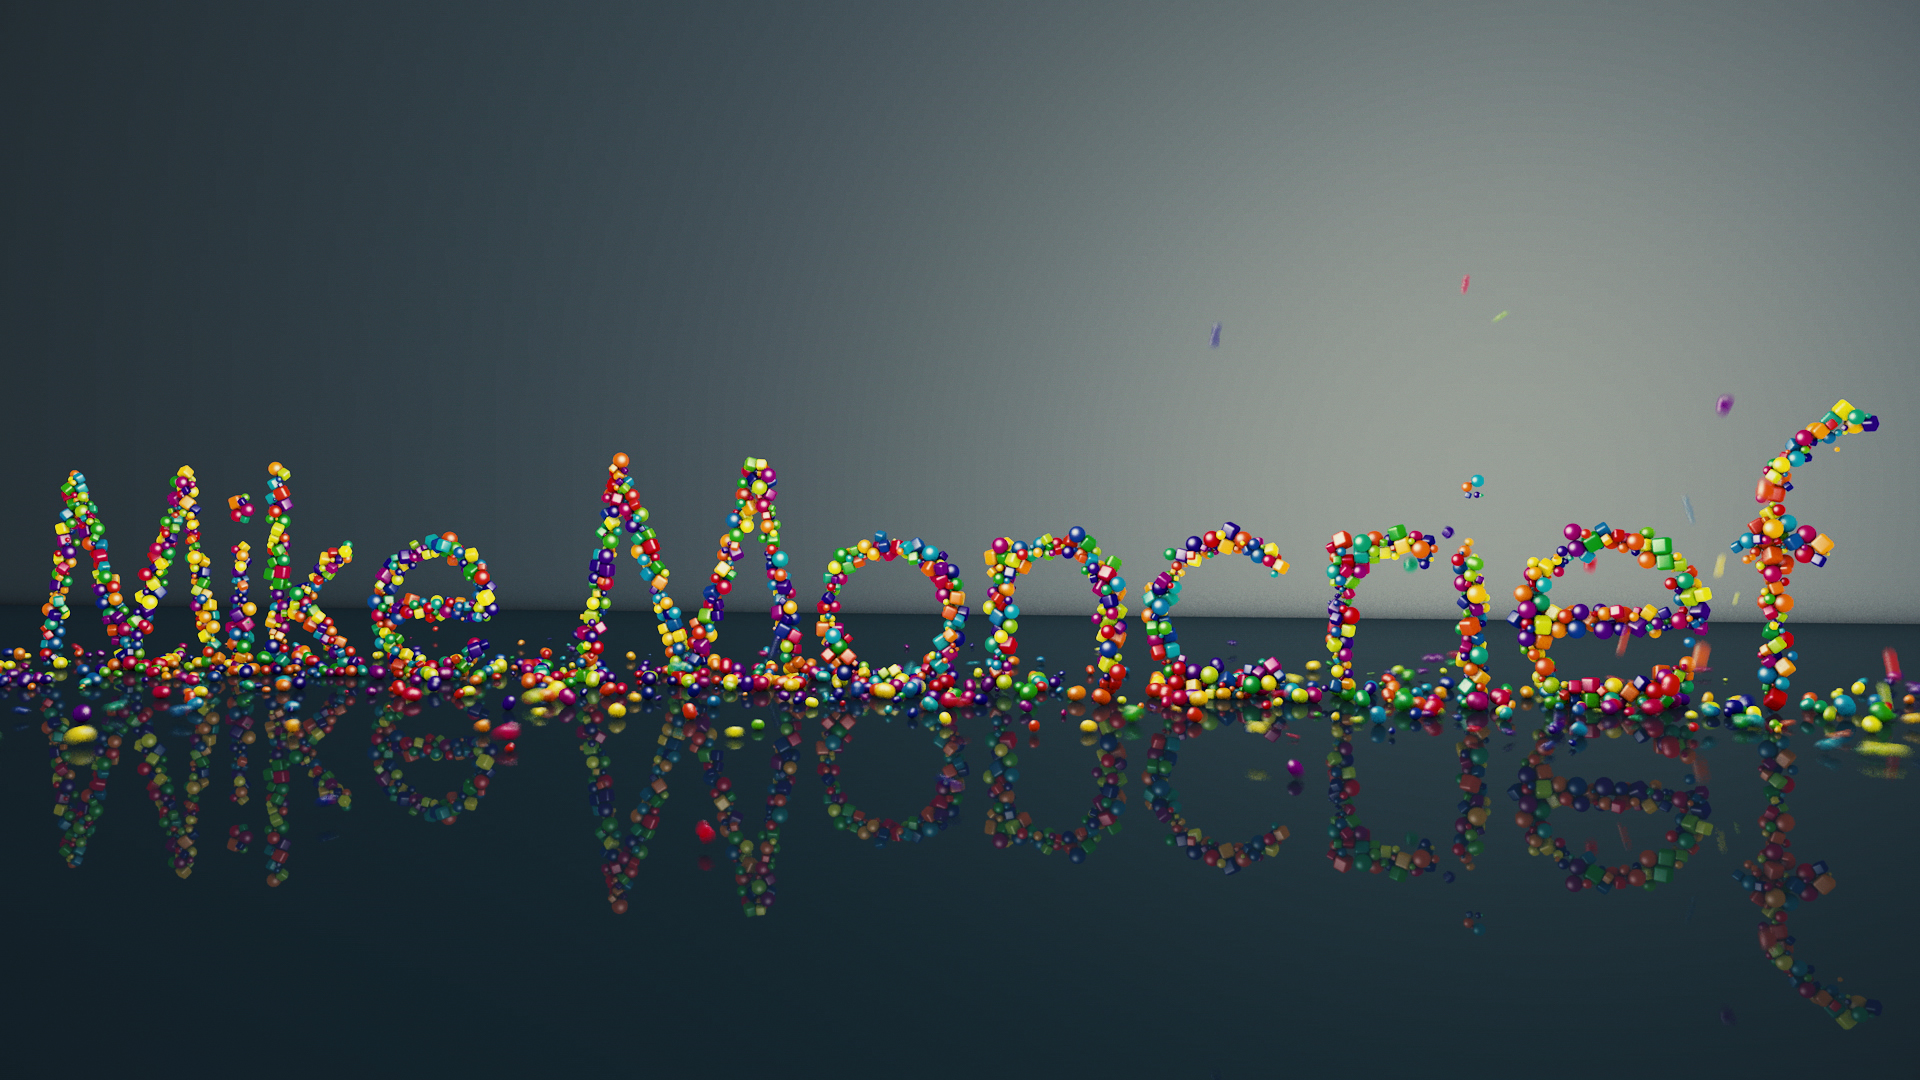 I have been having fun working in Cinema 4d. Putting together a one minute demo piece. Stay tuned !!